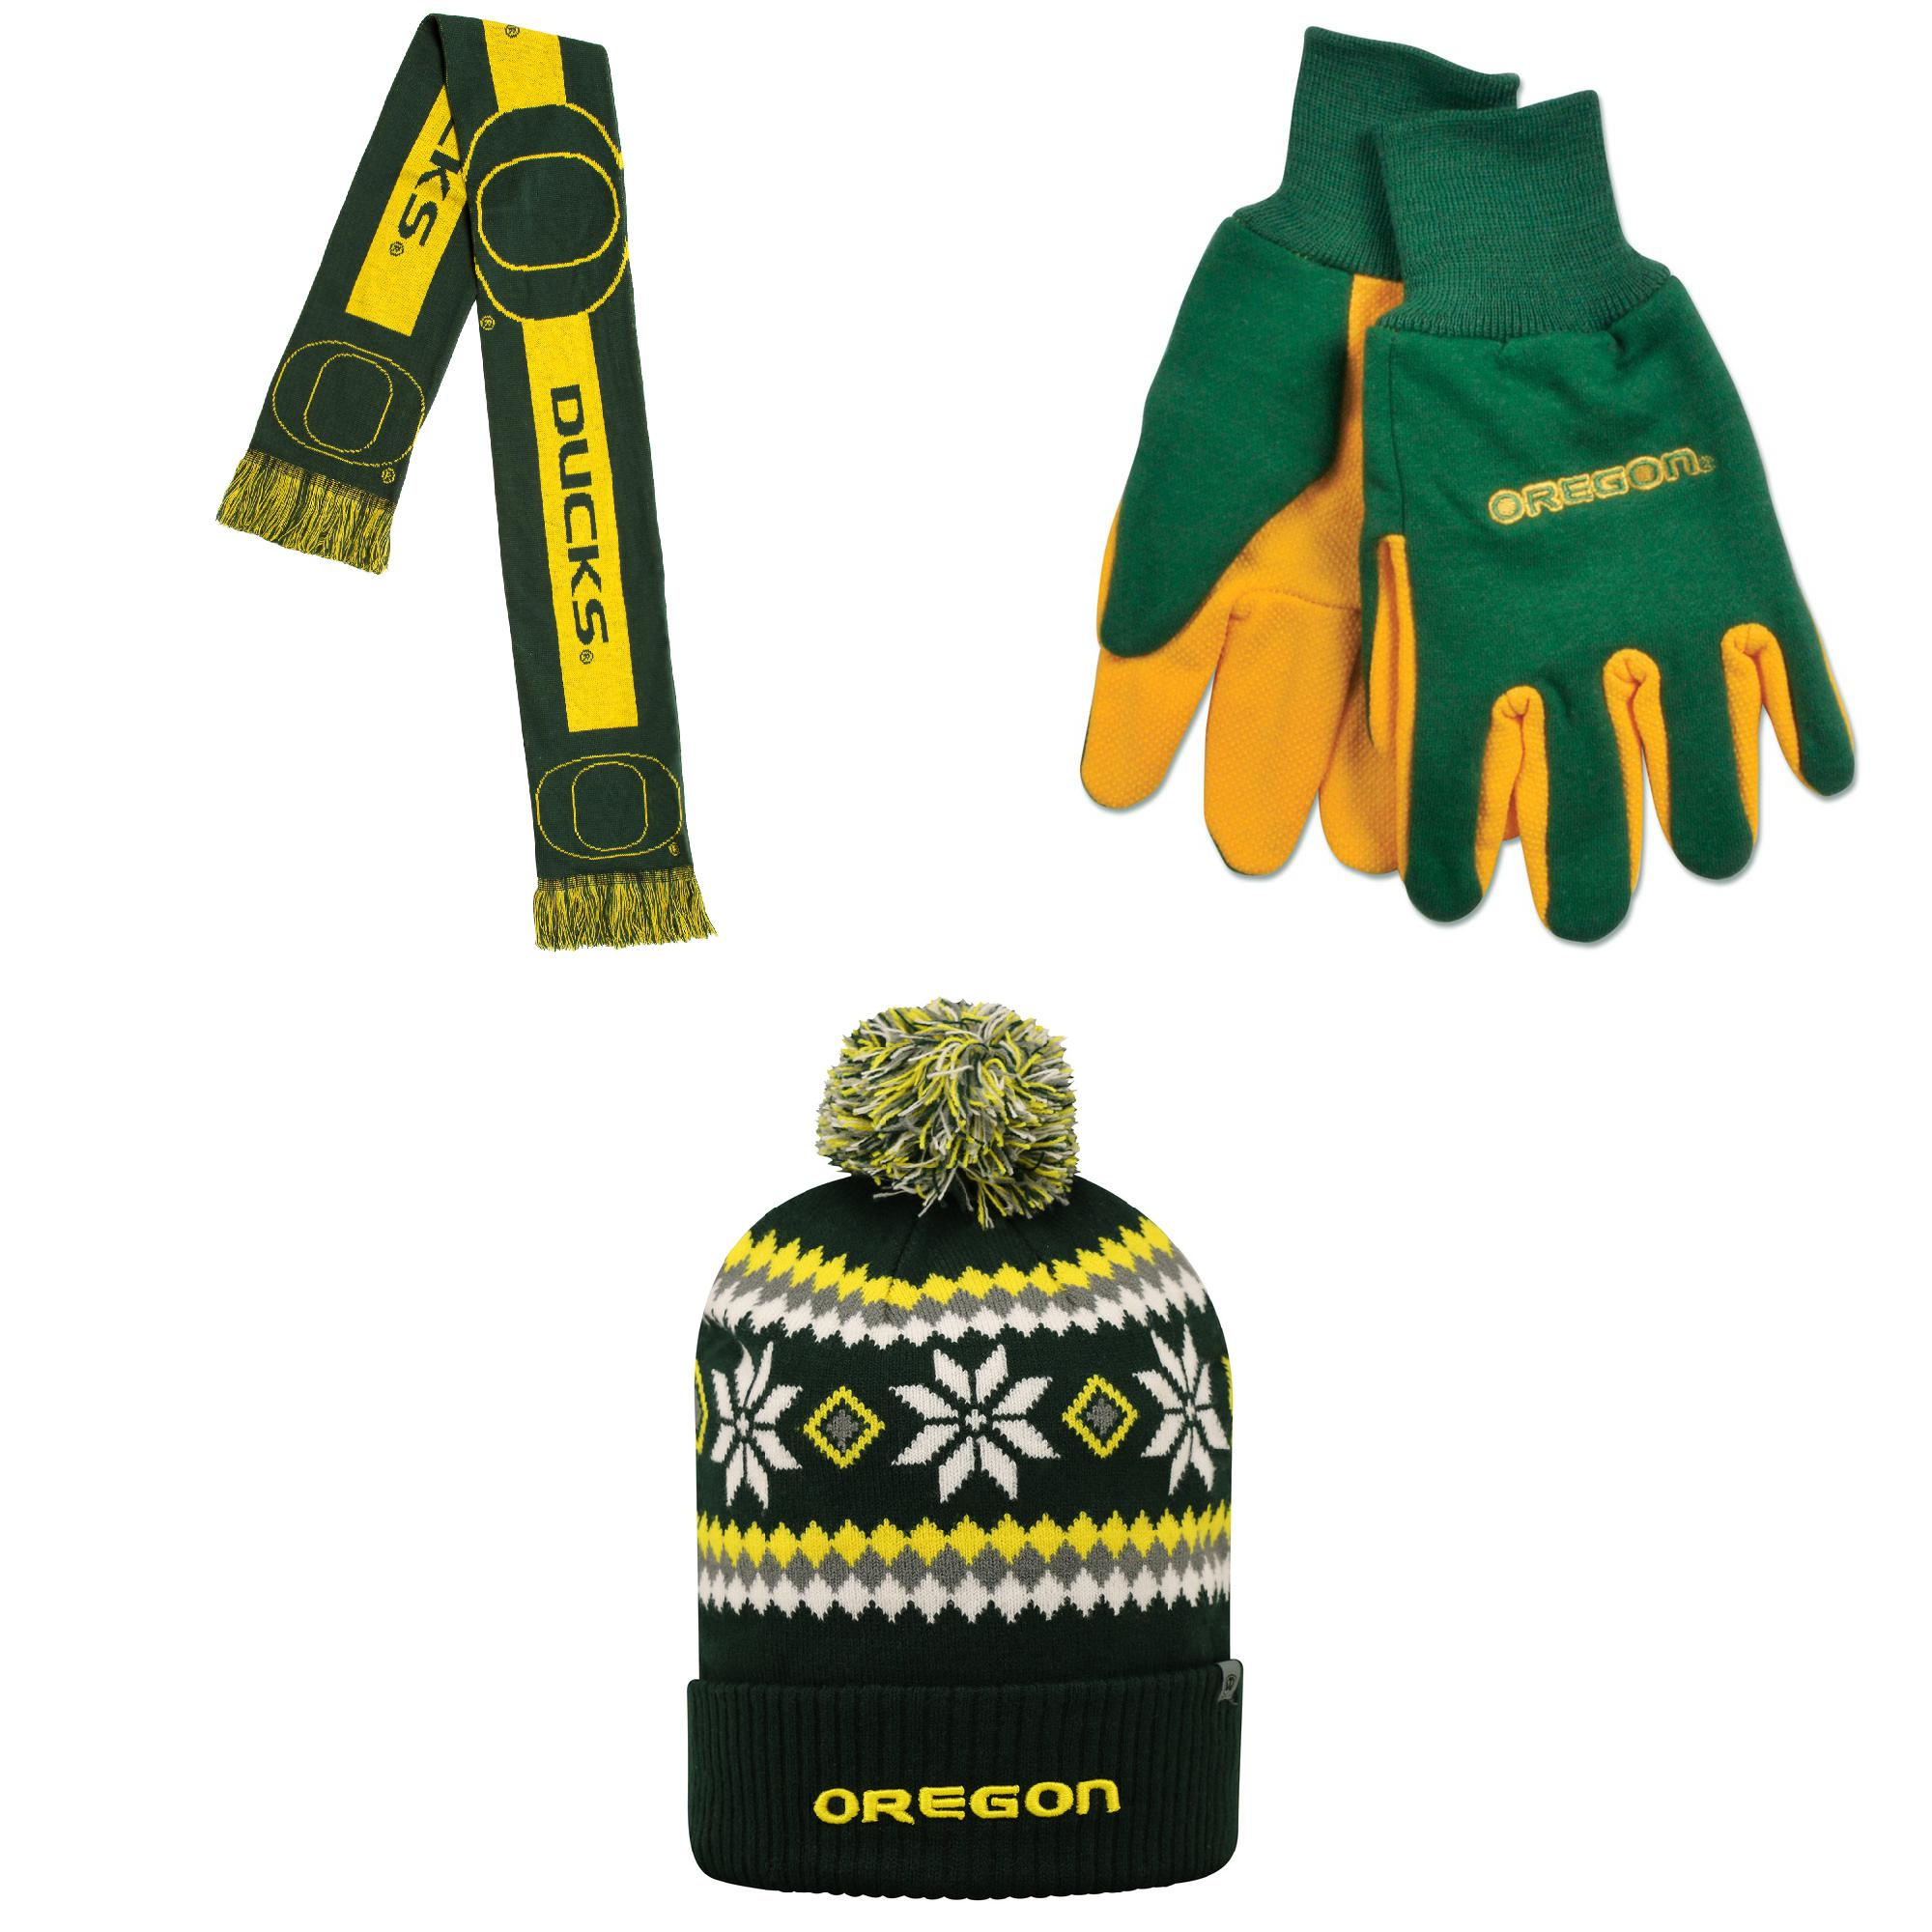 sports shoes 348d0 2835c cheapest oregon ducks top of the world ncaa hustle hard adjustable cap  e8a96 f891d  amazon ncaa oregon ducks grip work glove fogbow beanie hat and  big logo ...